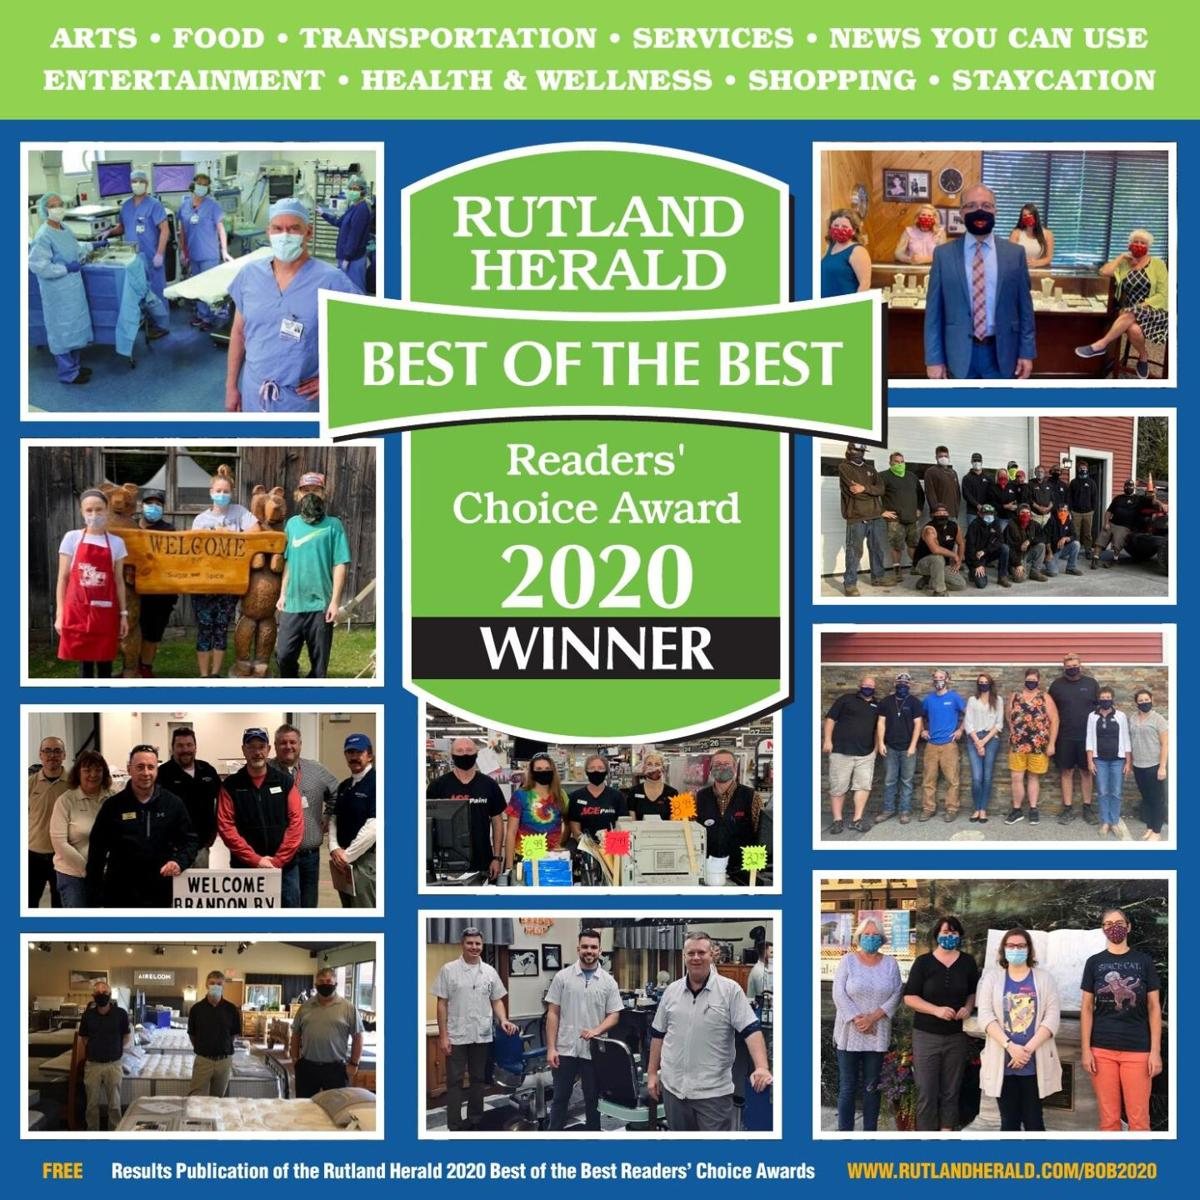 Best of the Best Readers' Choice Awards 2020